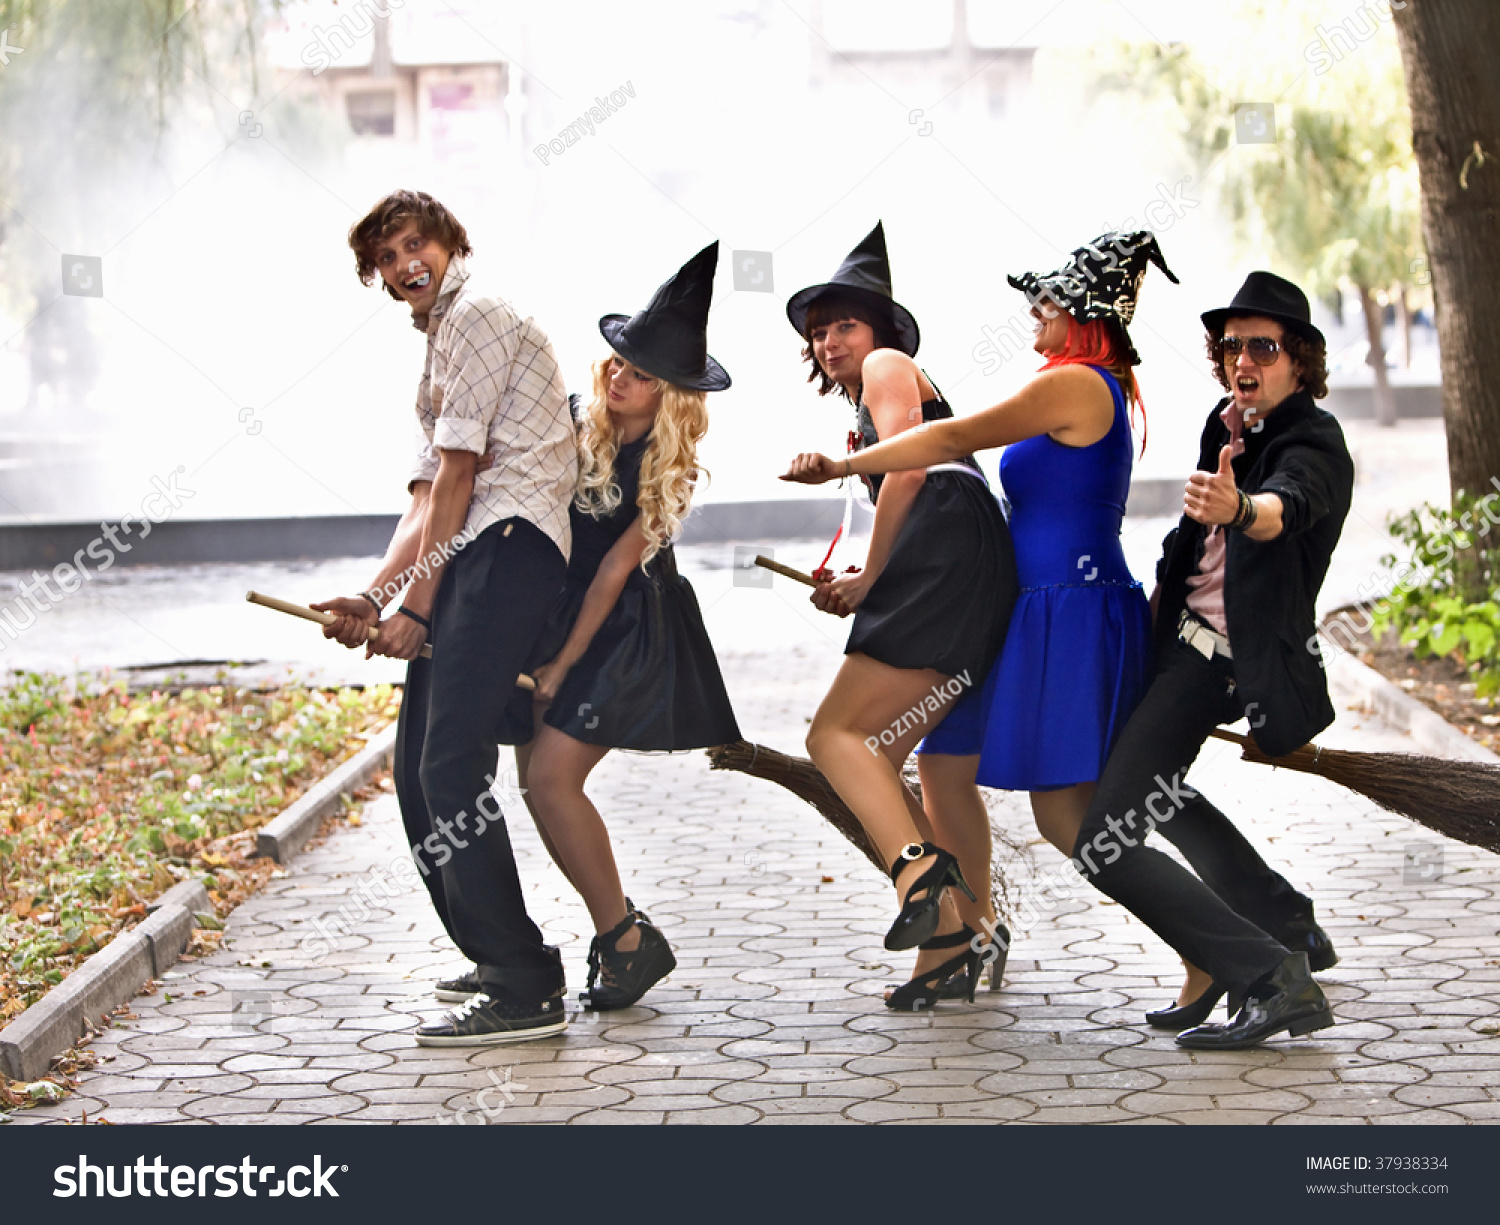 Group Of People On Broom And Halloween Witch Costume In Outdoor ...